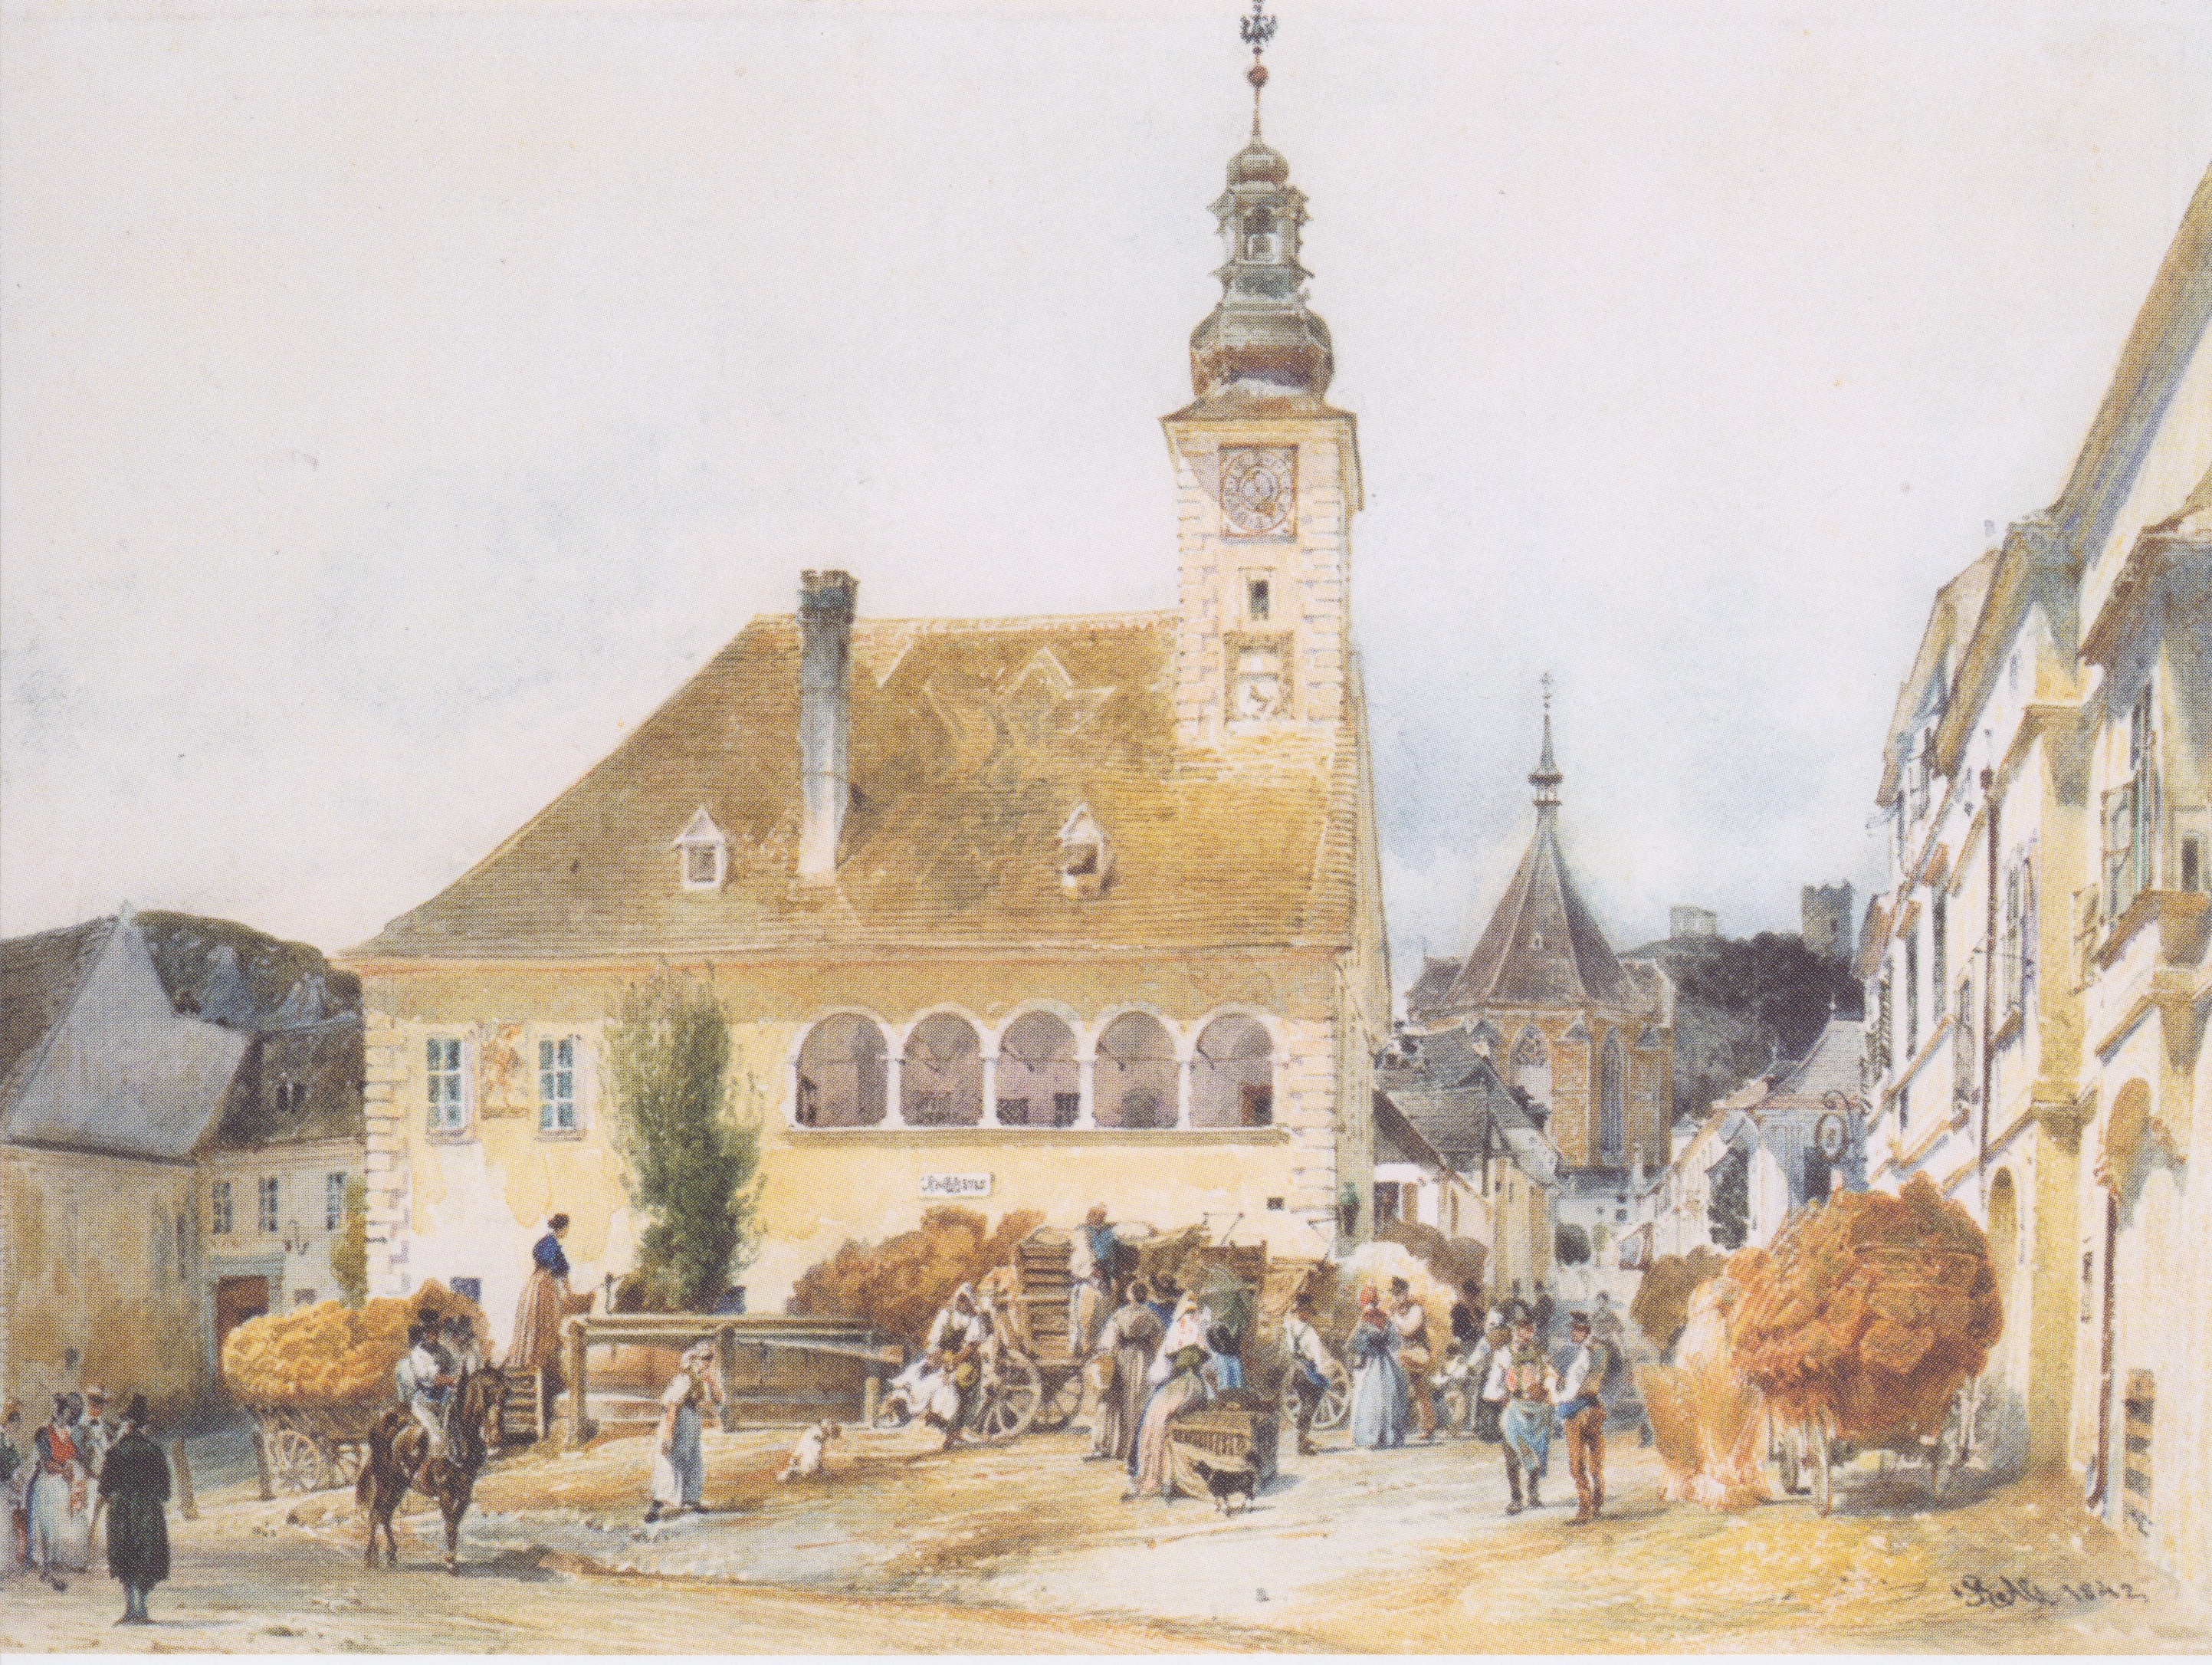 The Town Hall in Mödling, 1842